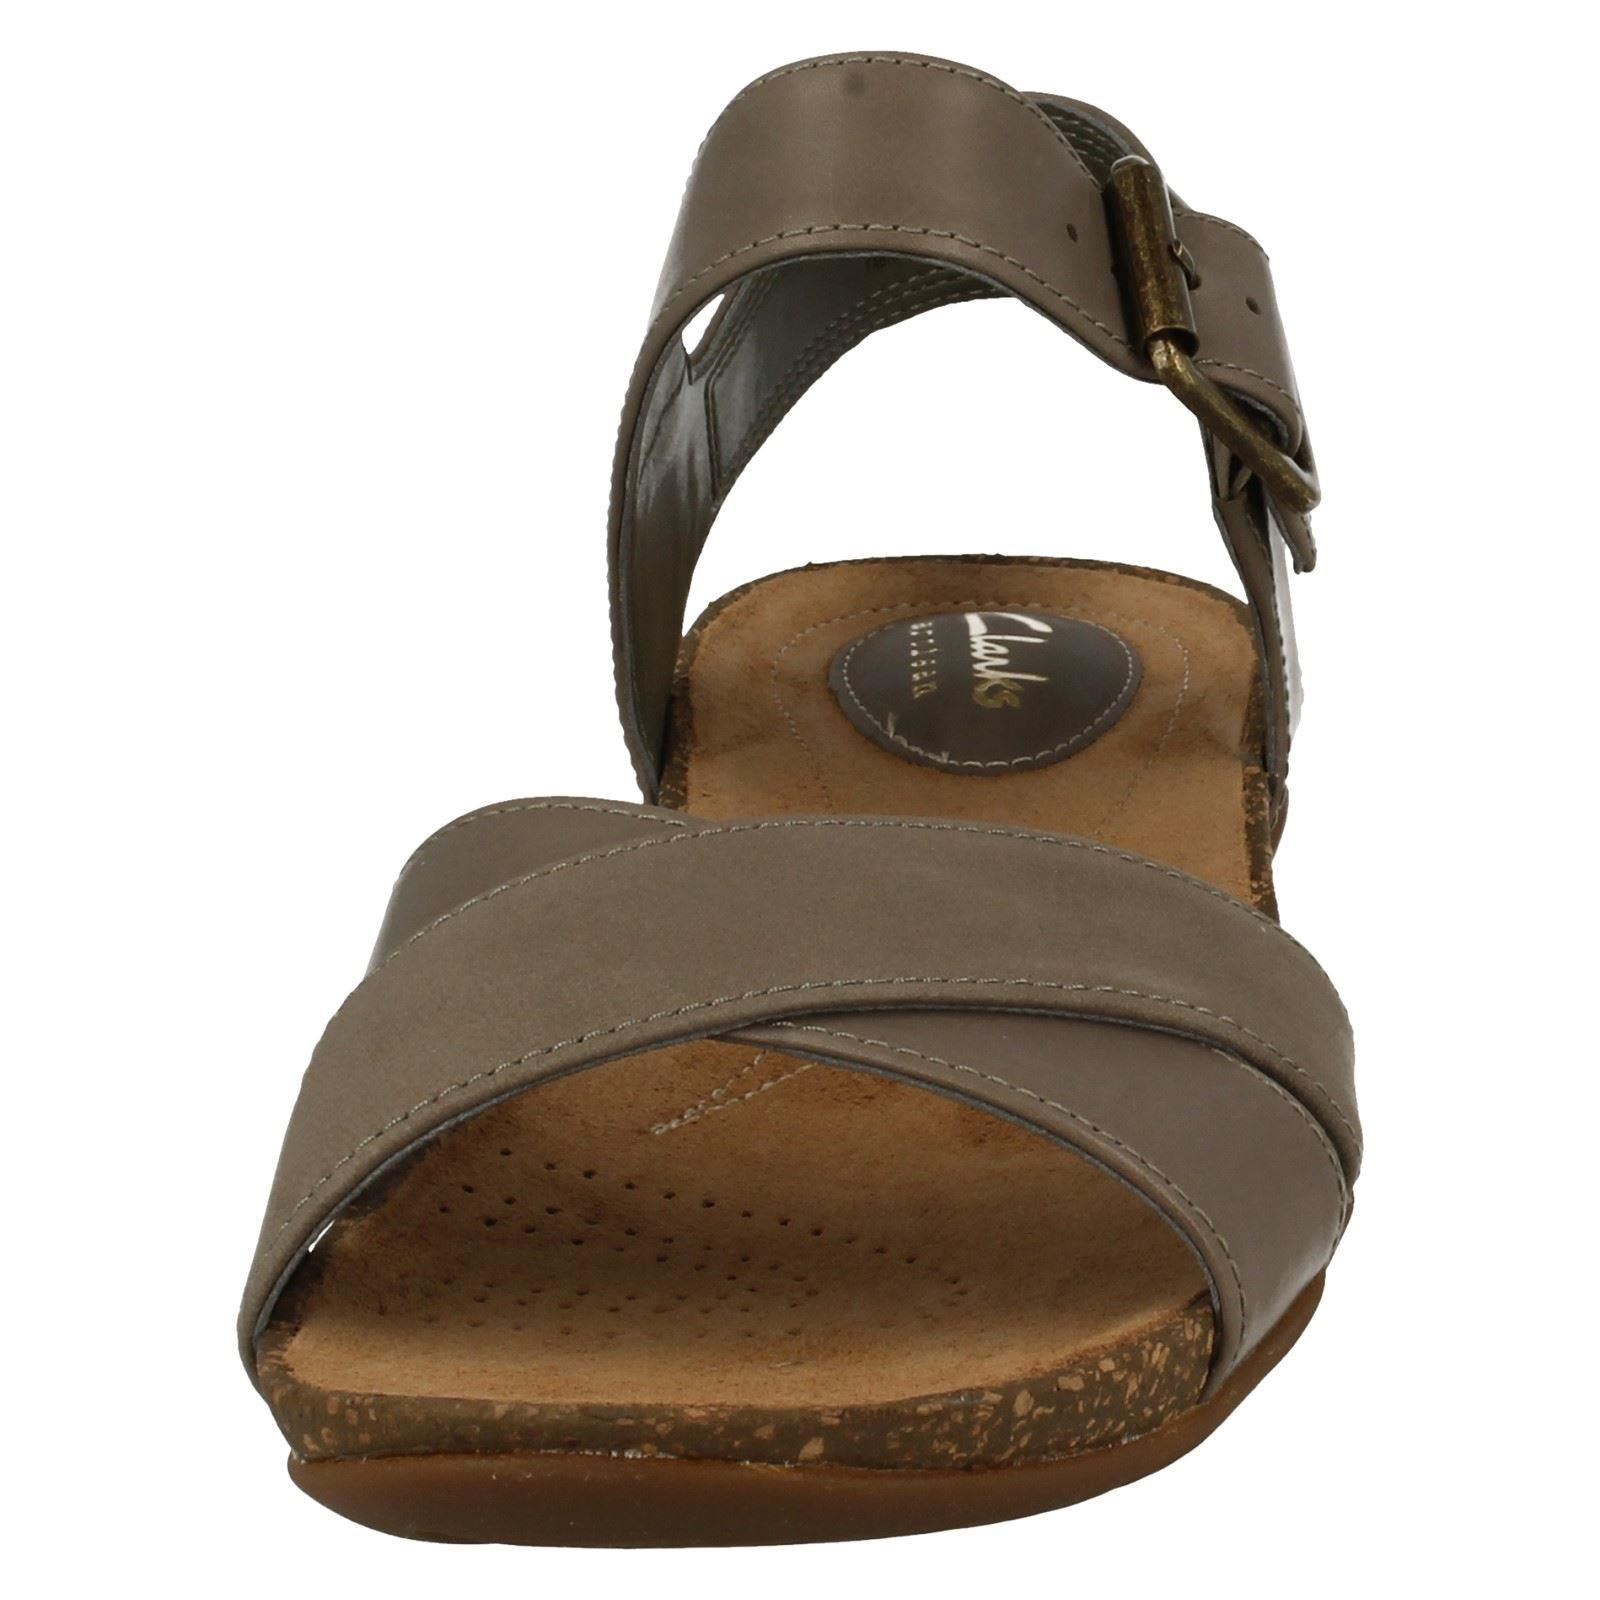 44849e960f3 Ladies Clarks Autumn Air Casual Summer Sandals with Buckle